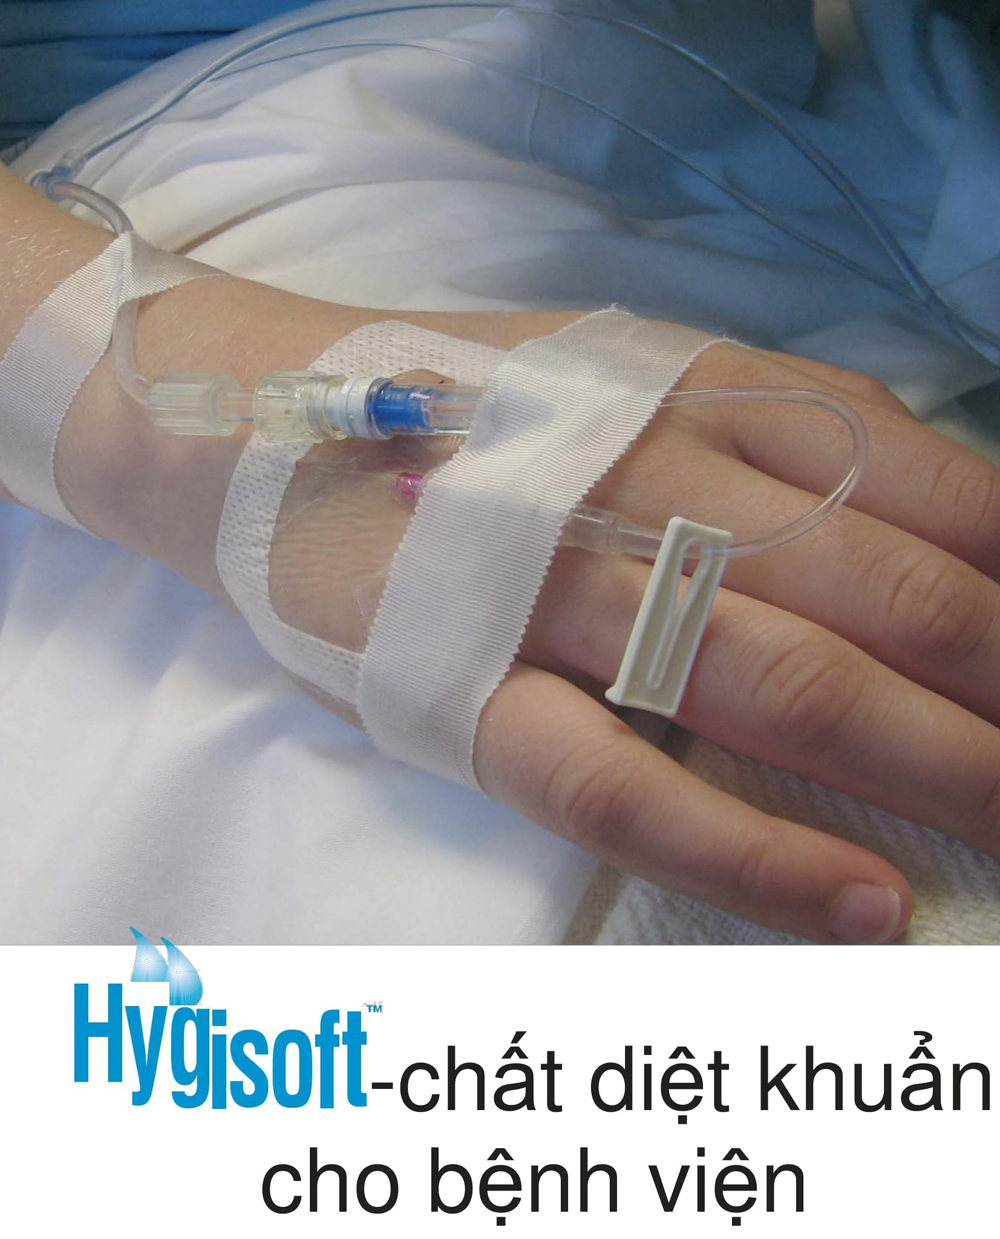 Hygisoft-chat-diet-khuan-trong-y-te-1